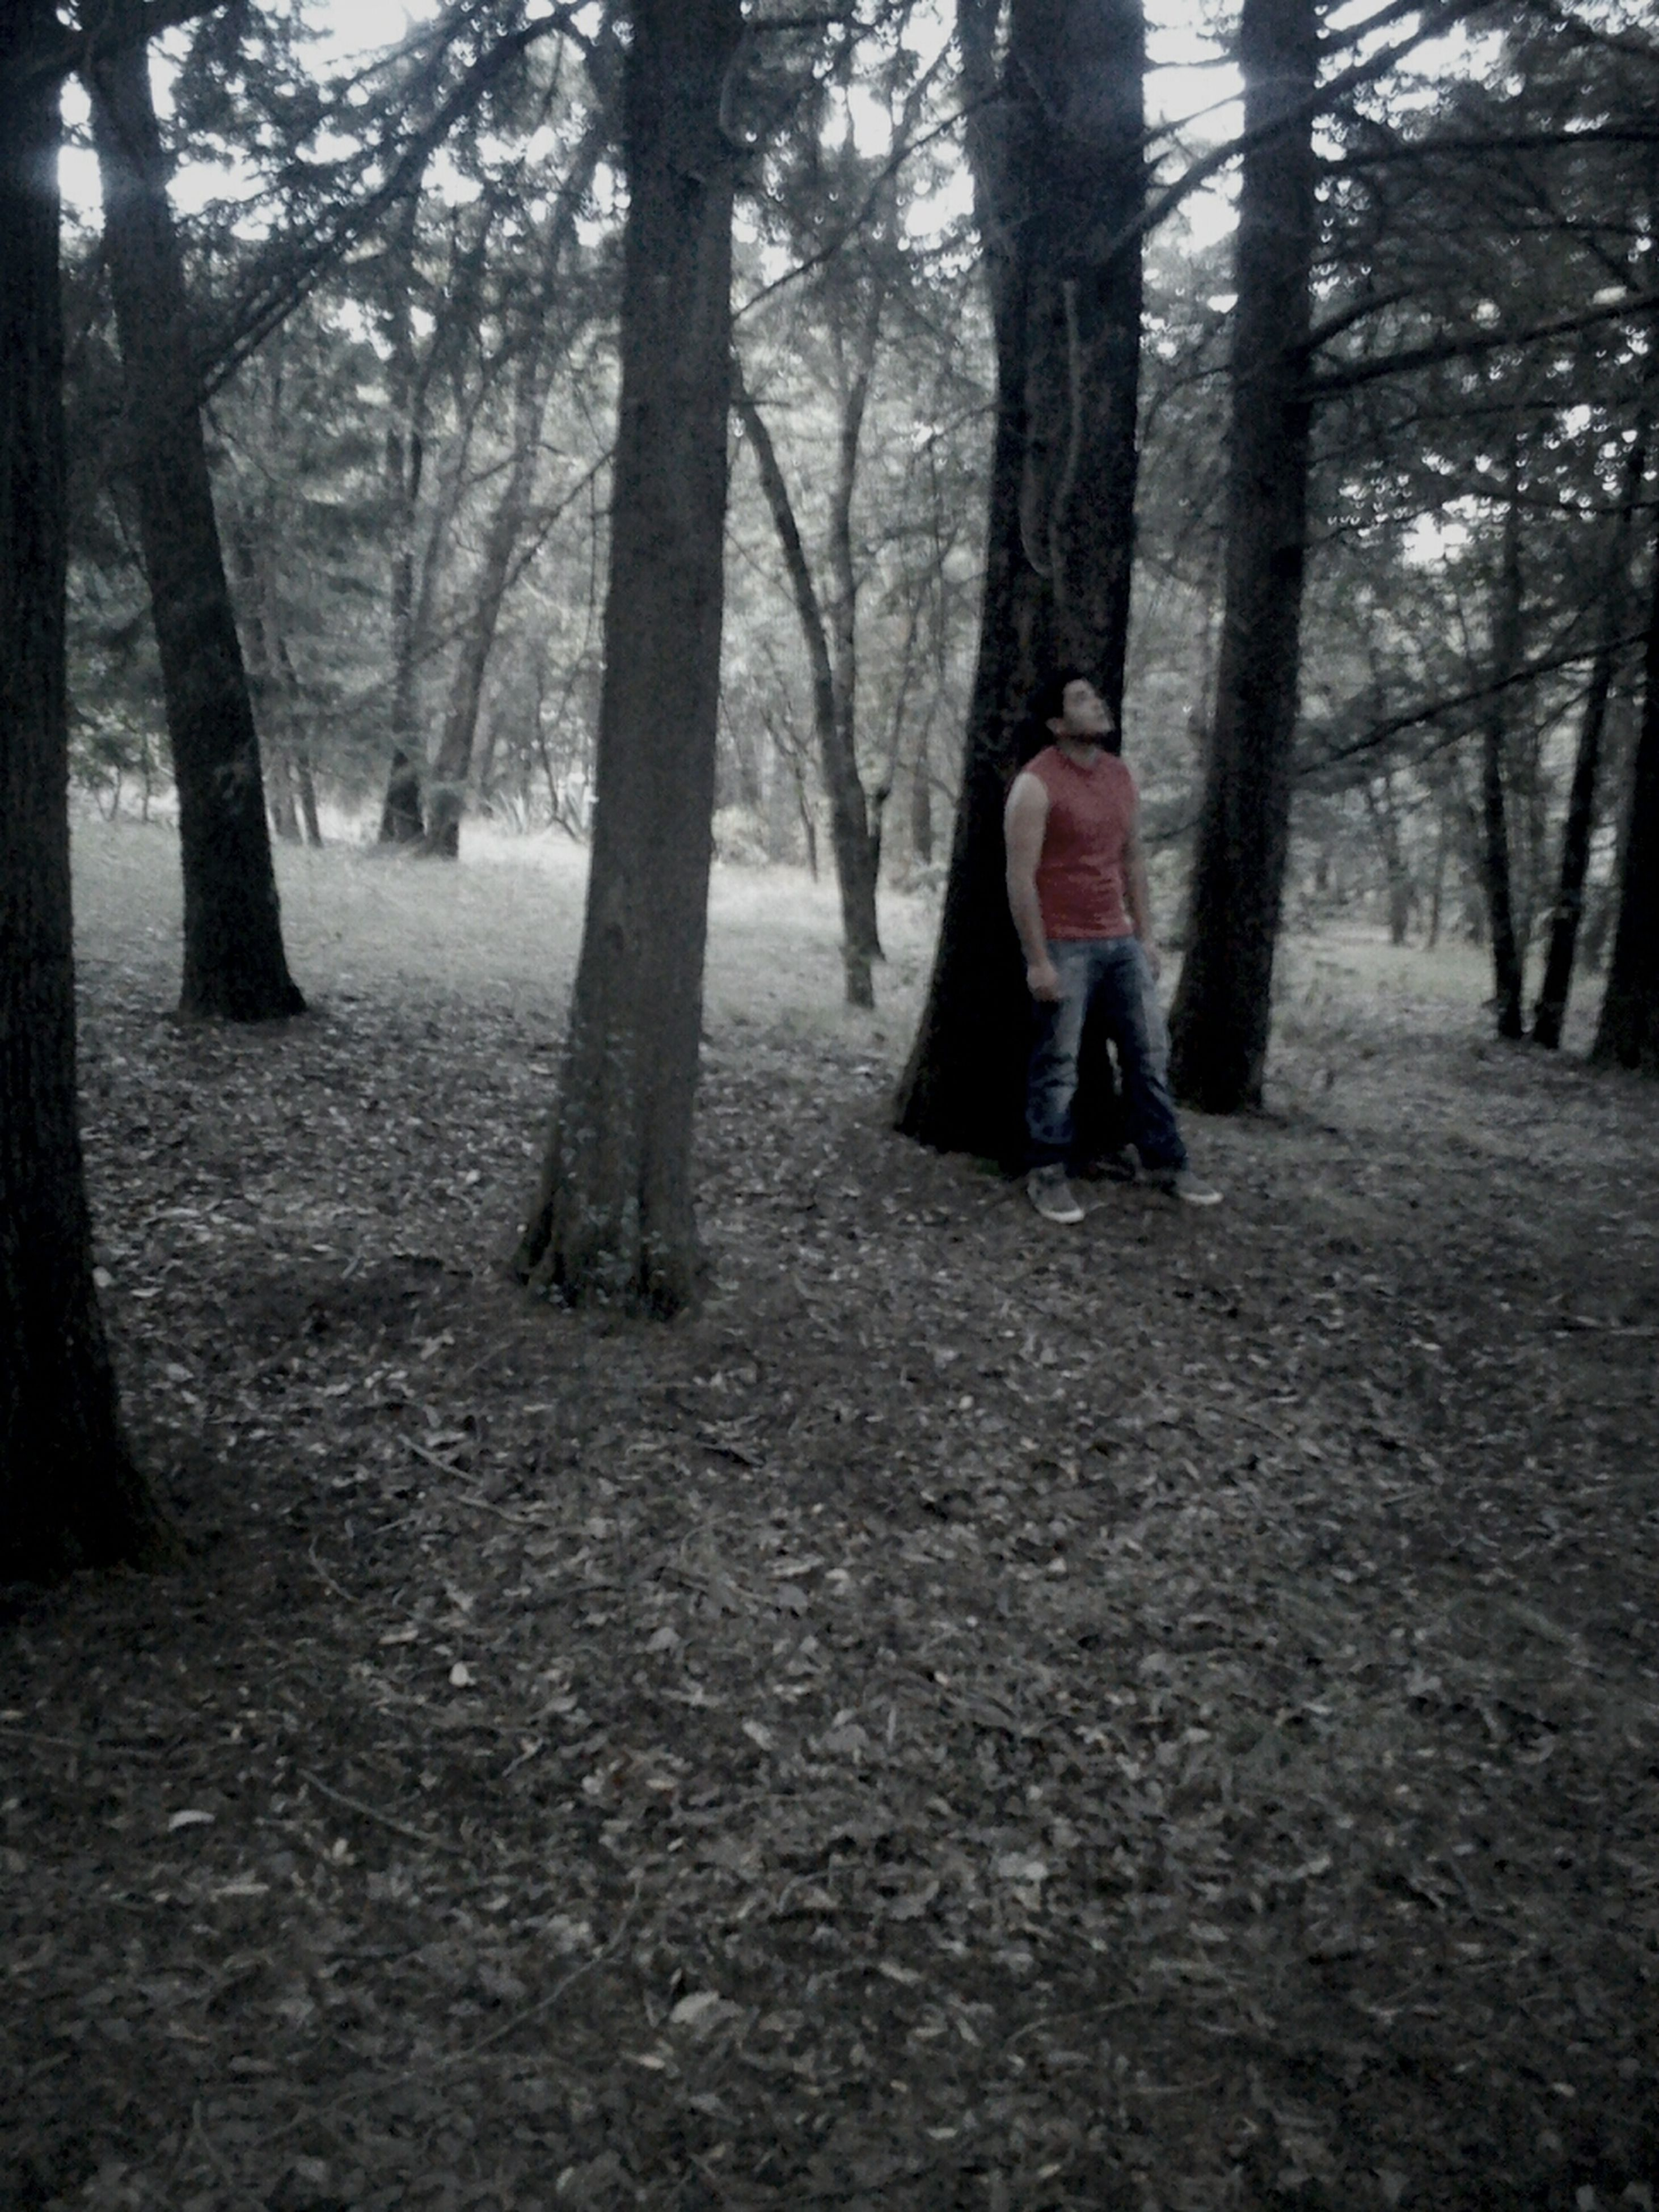 tree, lifestyles, tree trunk, leisure activity, forest, casual clothing, full length, person, woodland, front view, standing, young adult, nature, day, warm clothing, park - man made space, outdoors, looking at camera